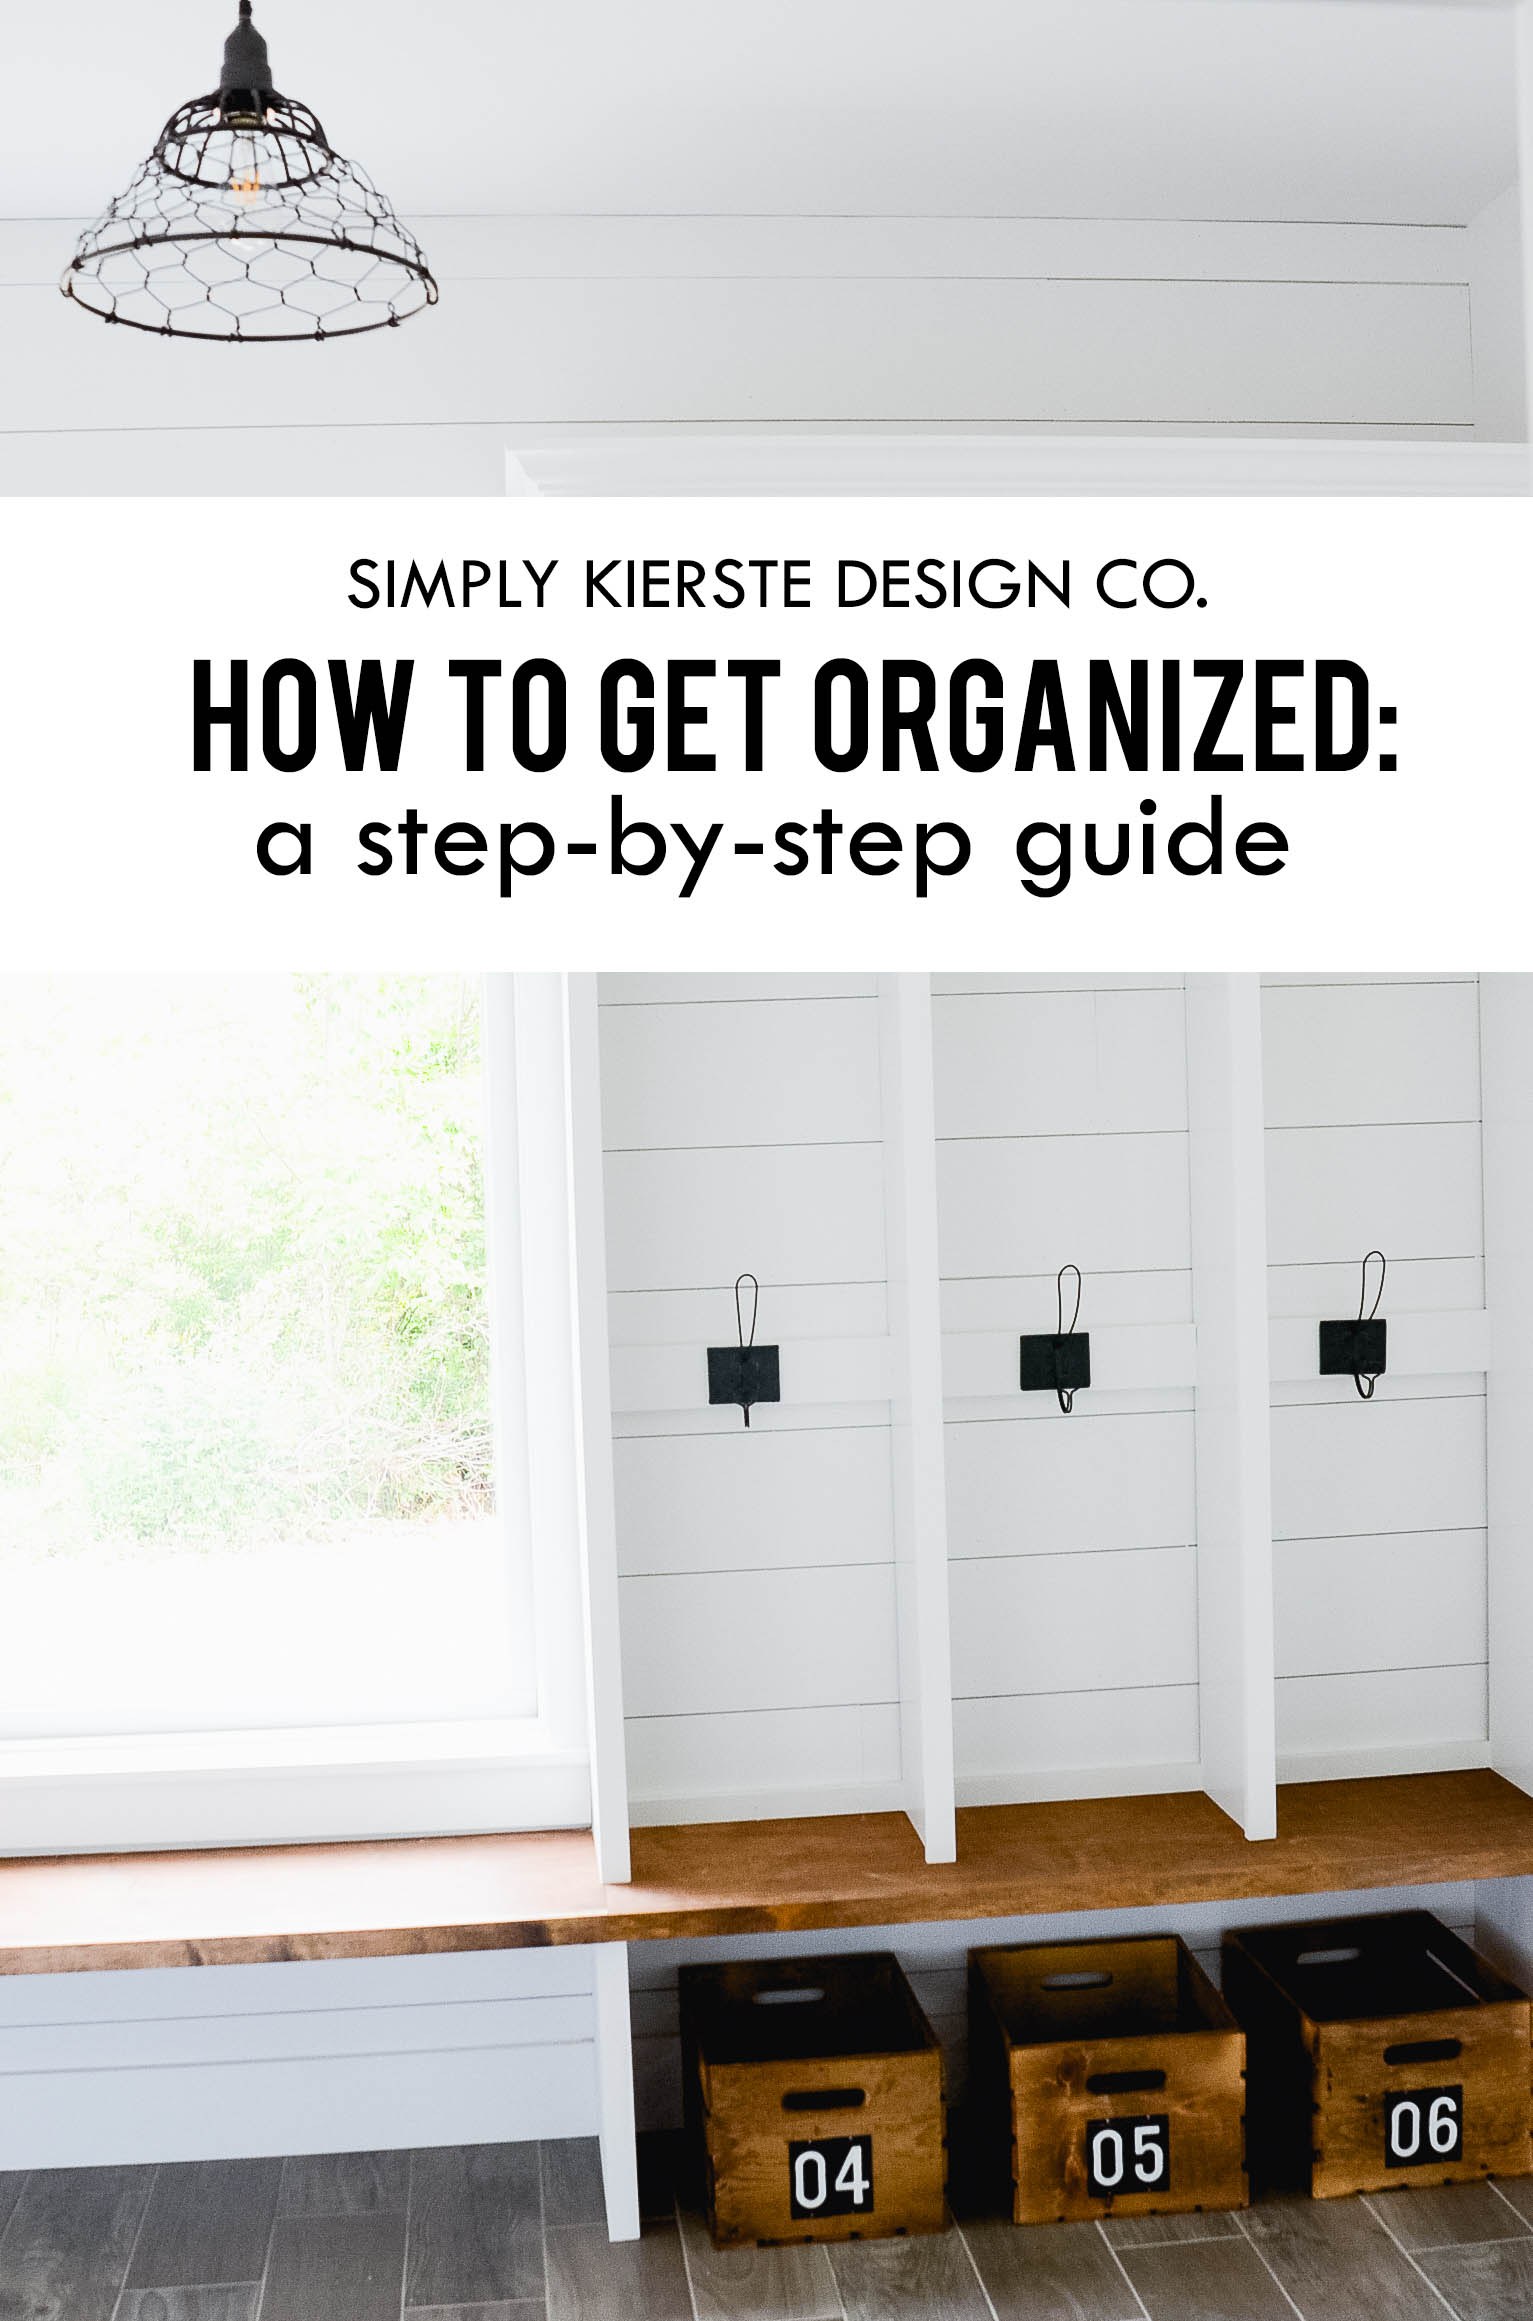 How to get organized   A guide to getting started   simplykierste.com #gettingorganized #howtogetorganized #organizationtips #organizationideas